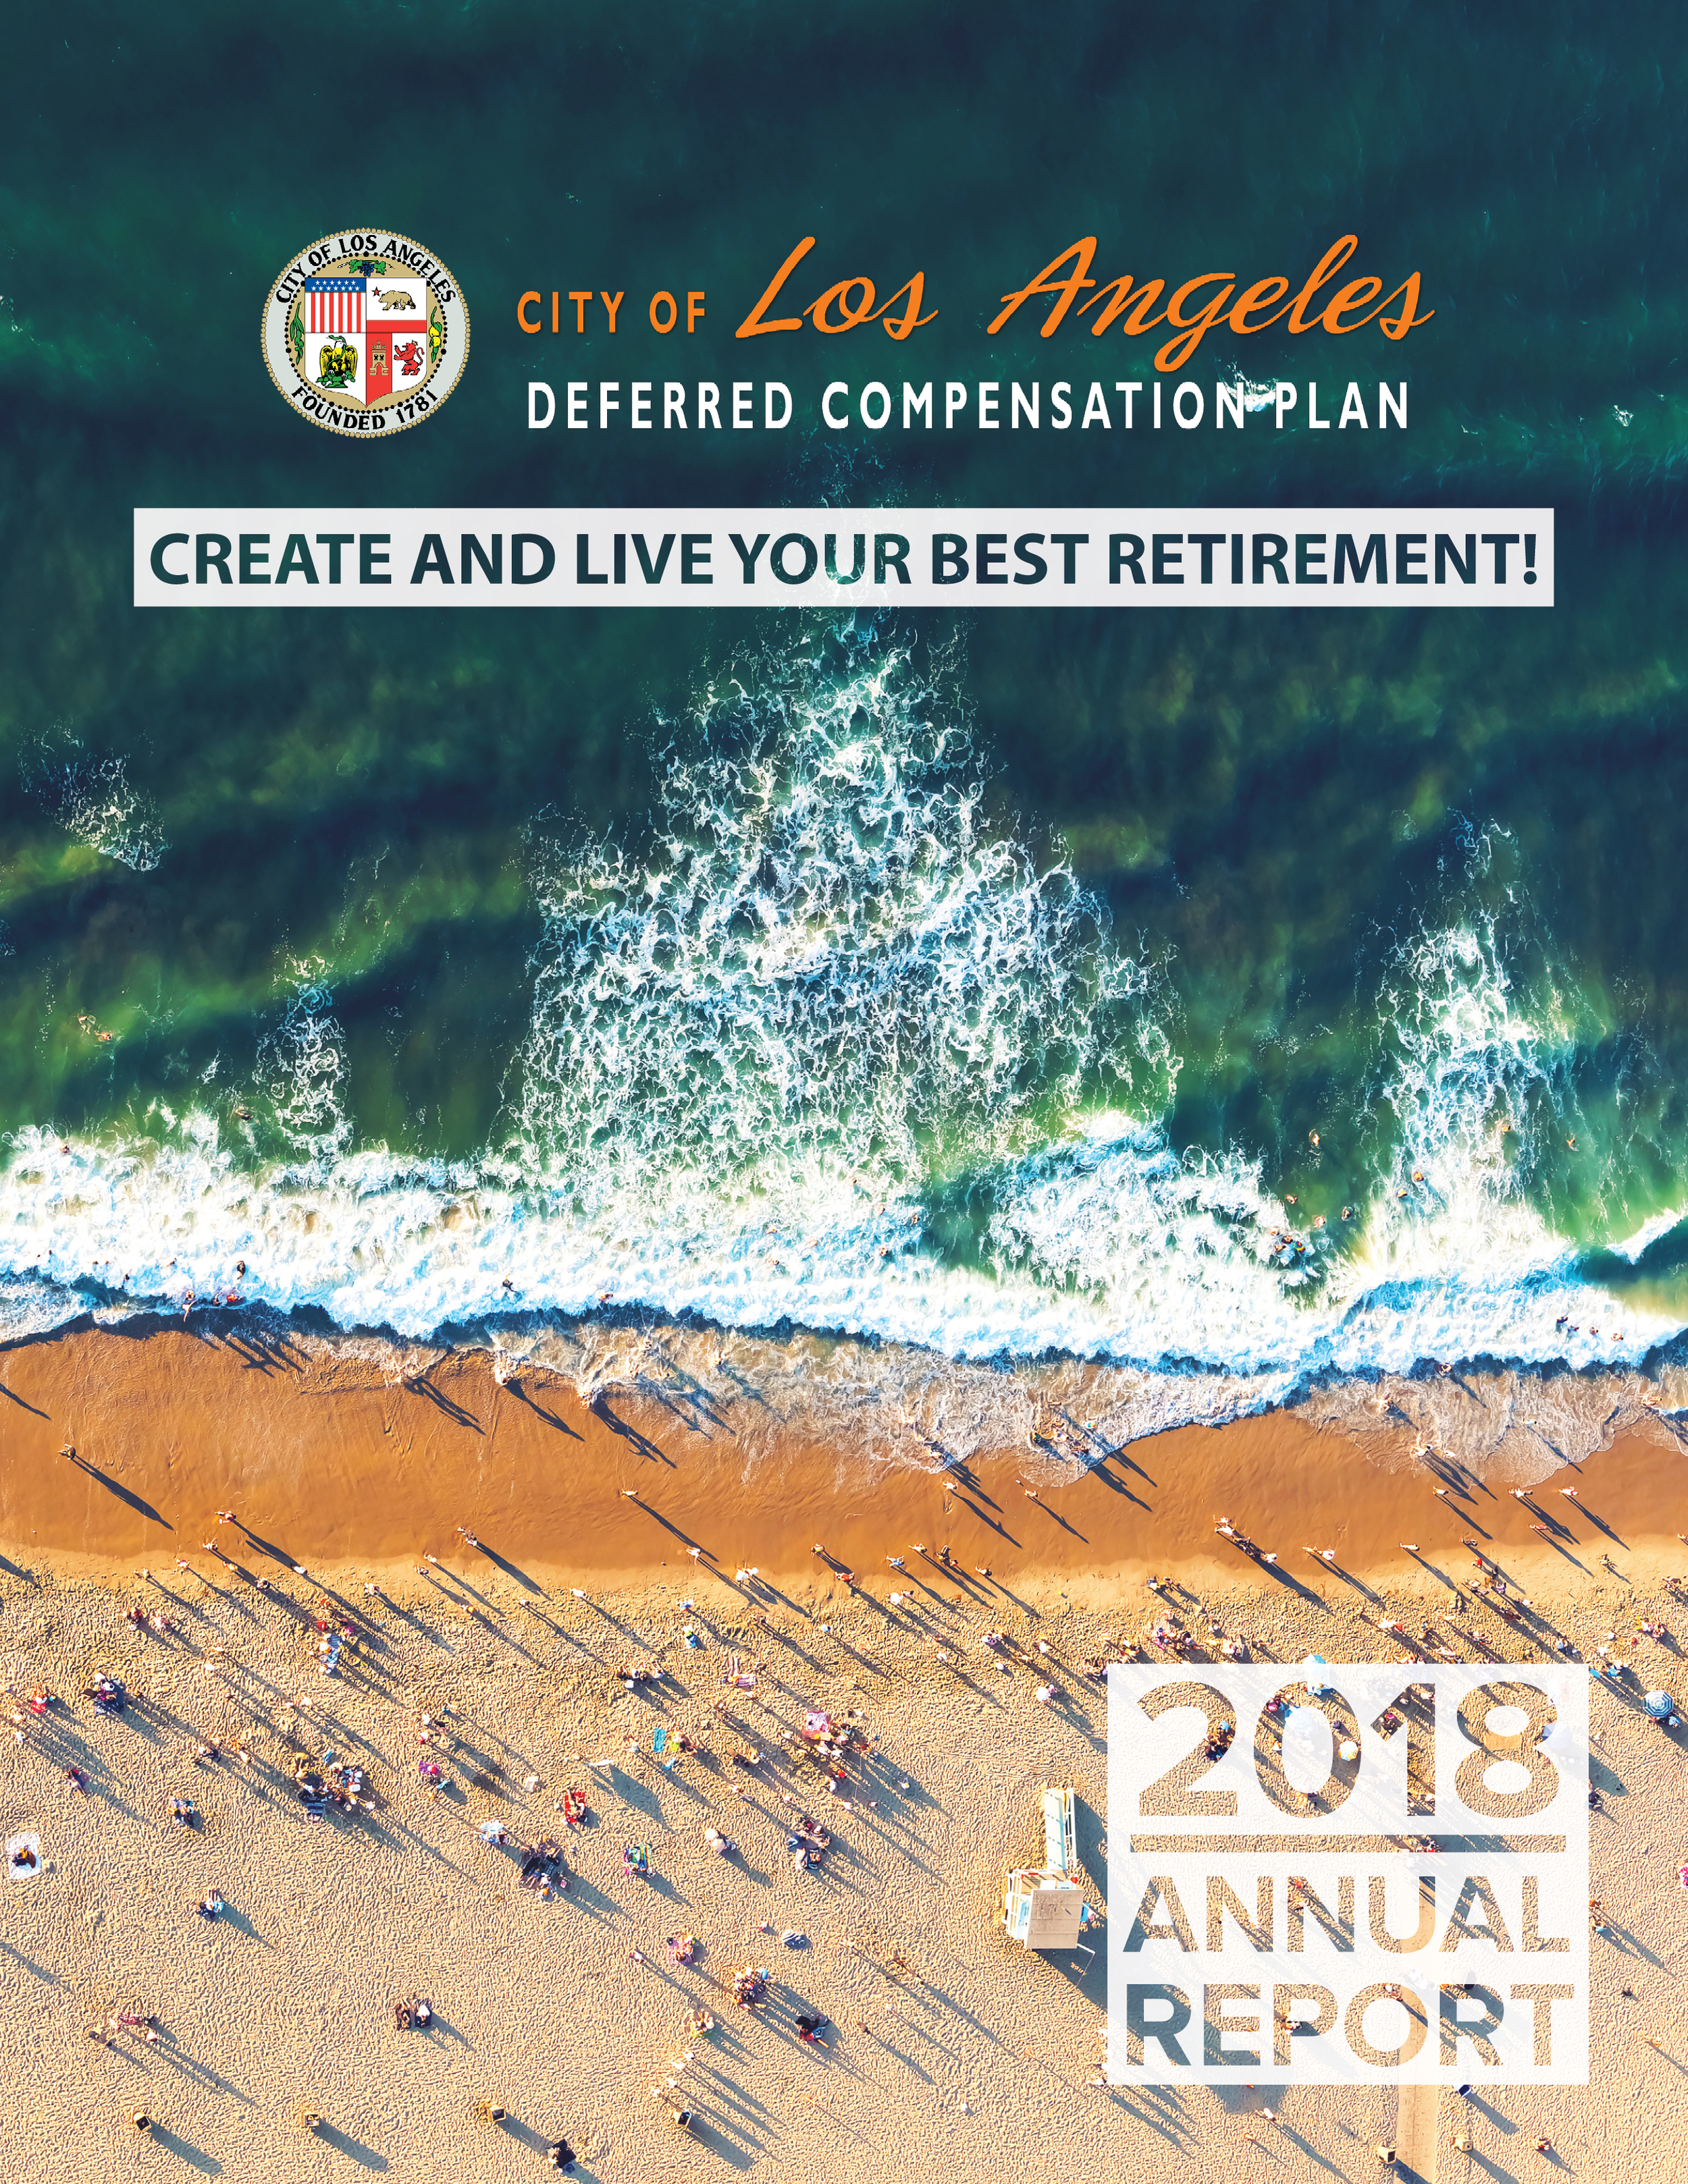 2018 Annual Report Cover.png